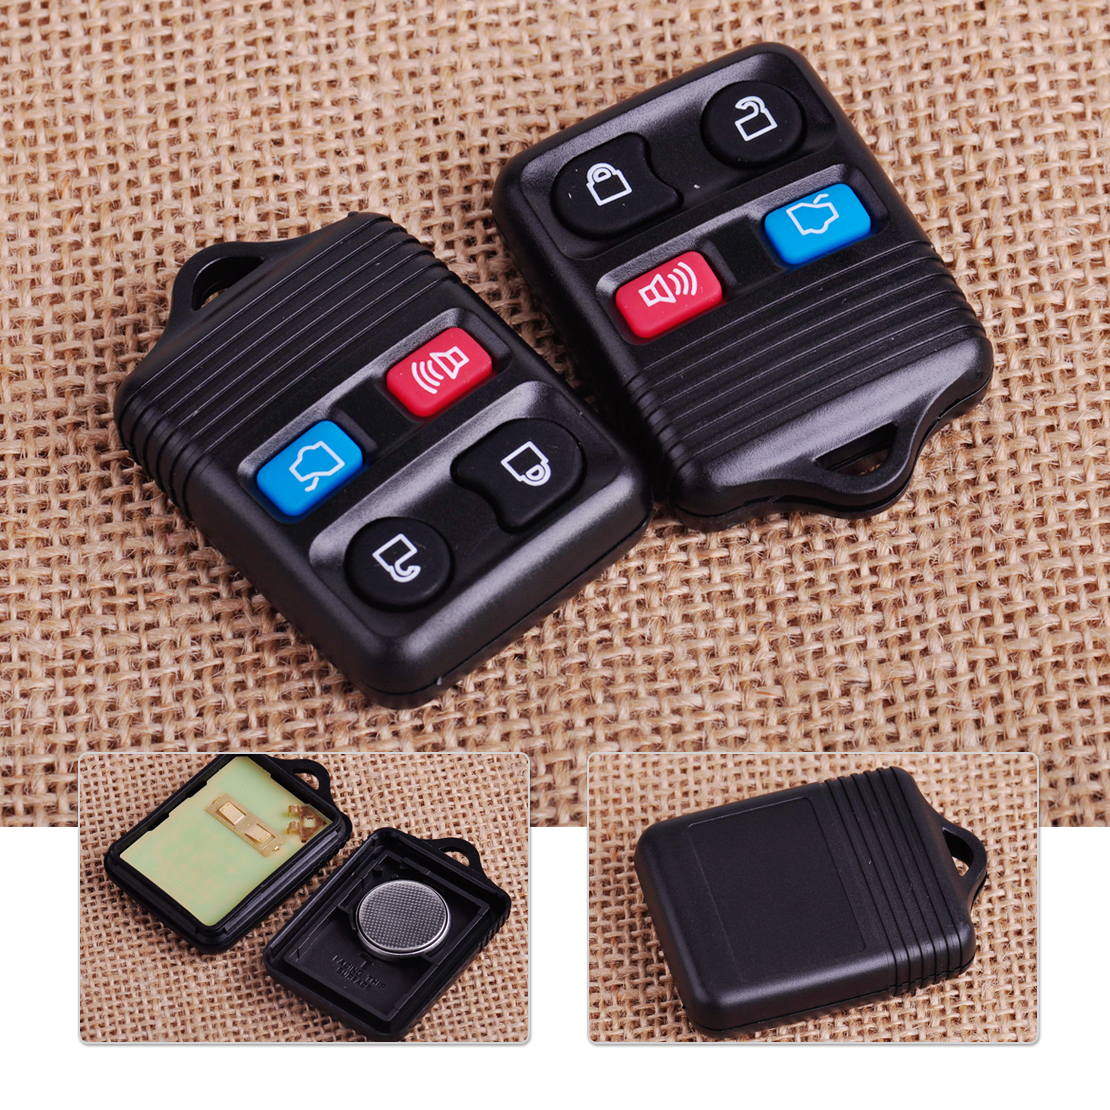 Citall cwtwb1u322 2pcs 4 button remote keyless entry key fob shell case replacement for ford focus